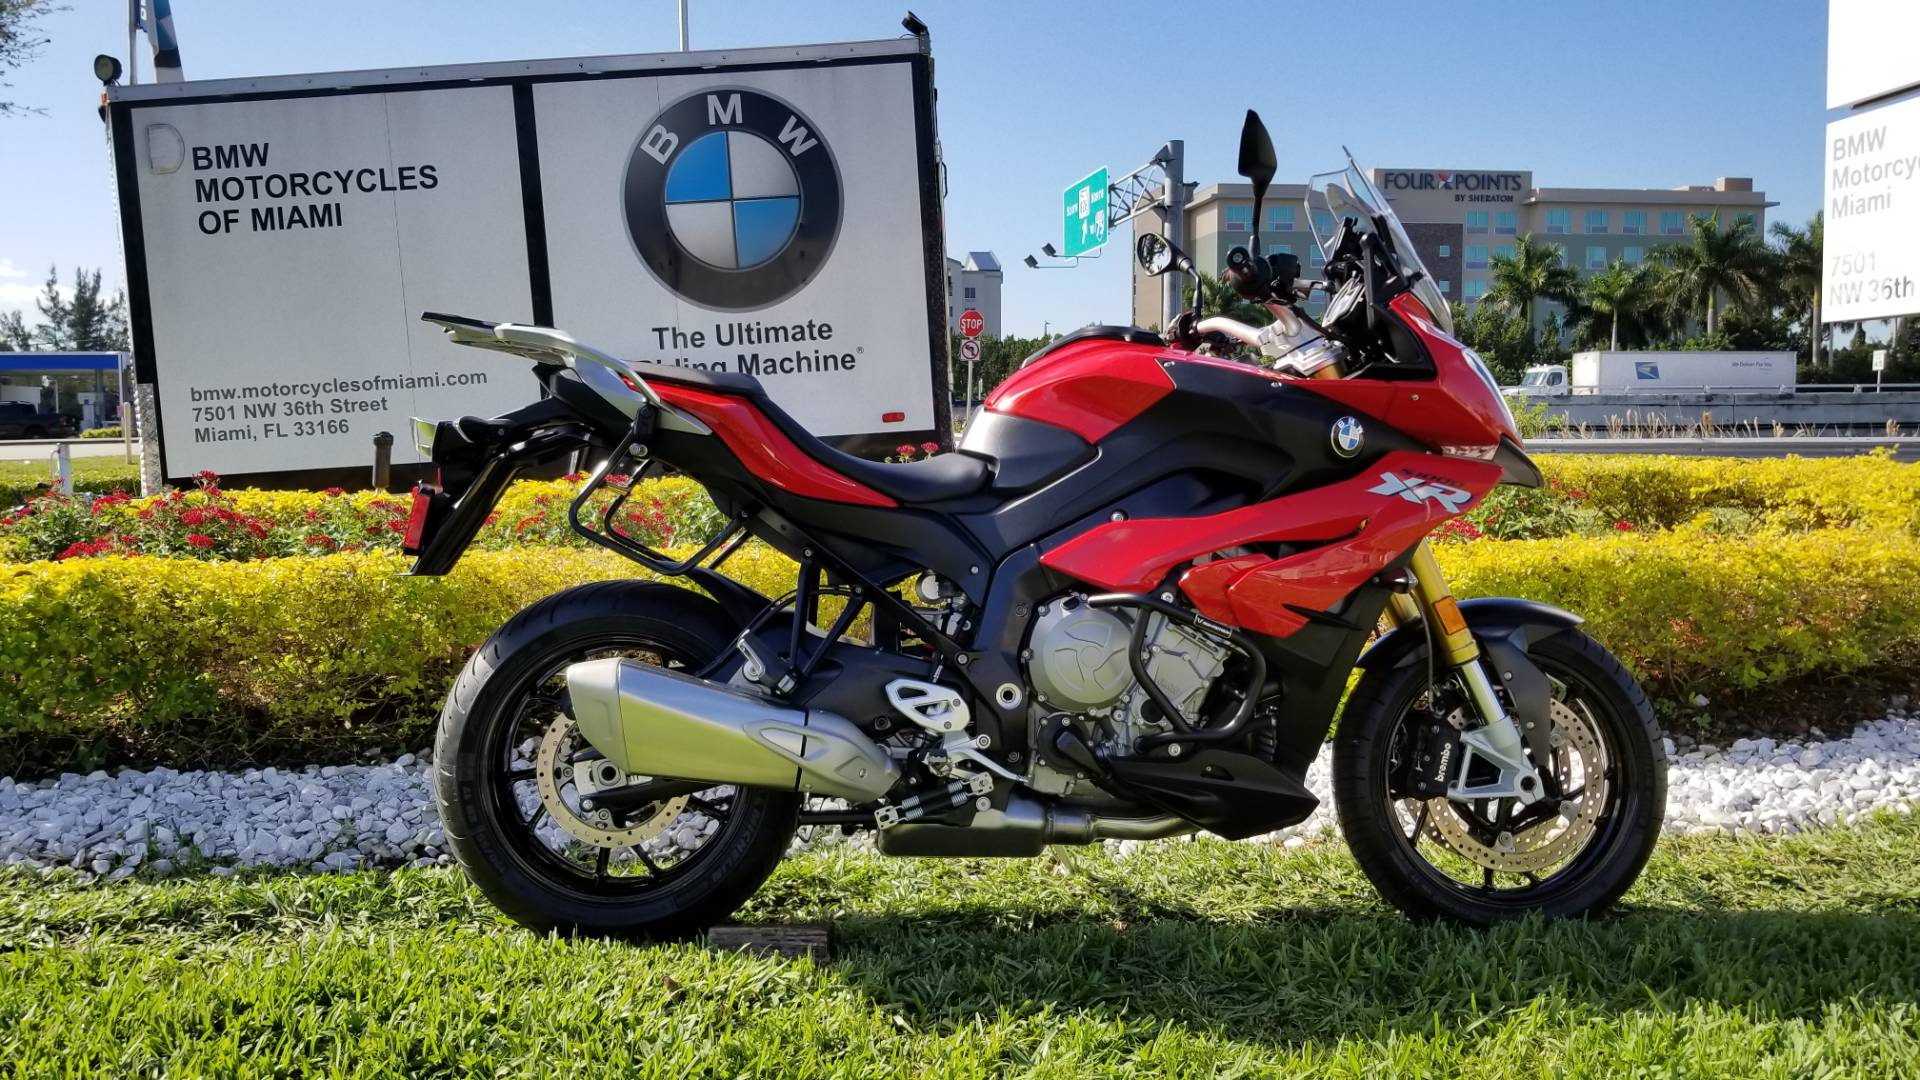 Used 2016 BMW S 1000 XR For Sale, Pre Owned BMW S 1000XR For Sale, Pre-Owned BMW Motorcycle S1000XR, BMW Motorcycle, S 1000 XR, DUAL, BMW - Photo 16